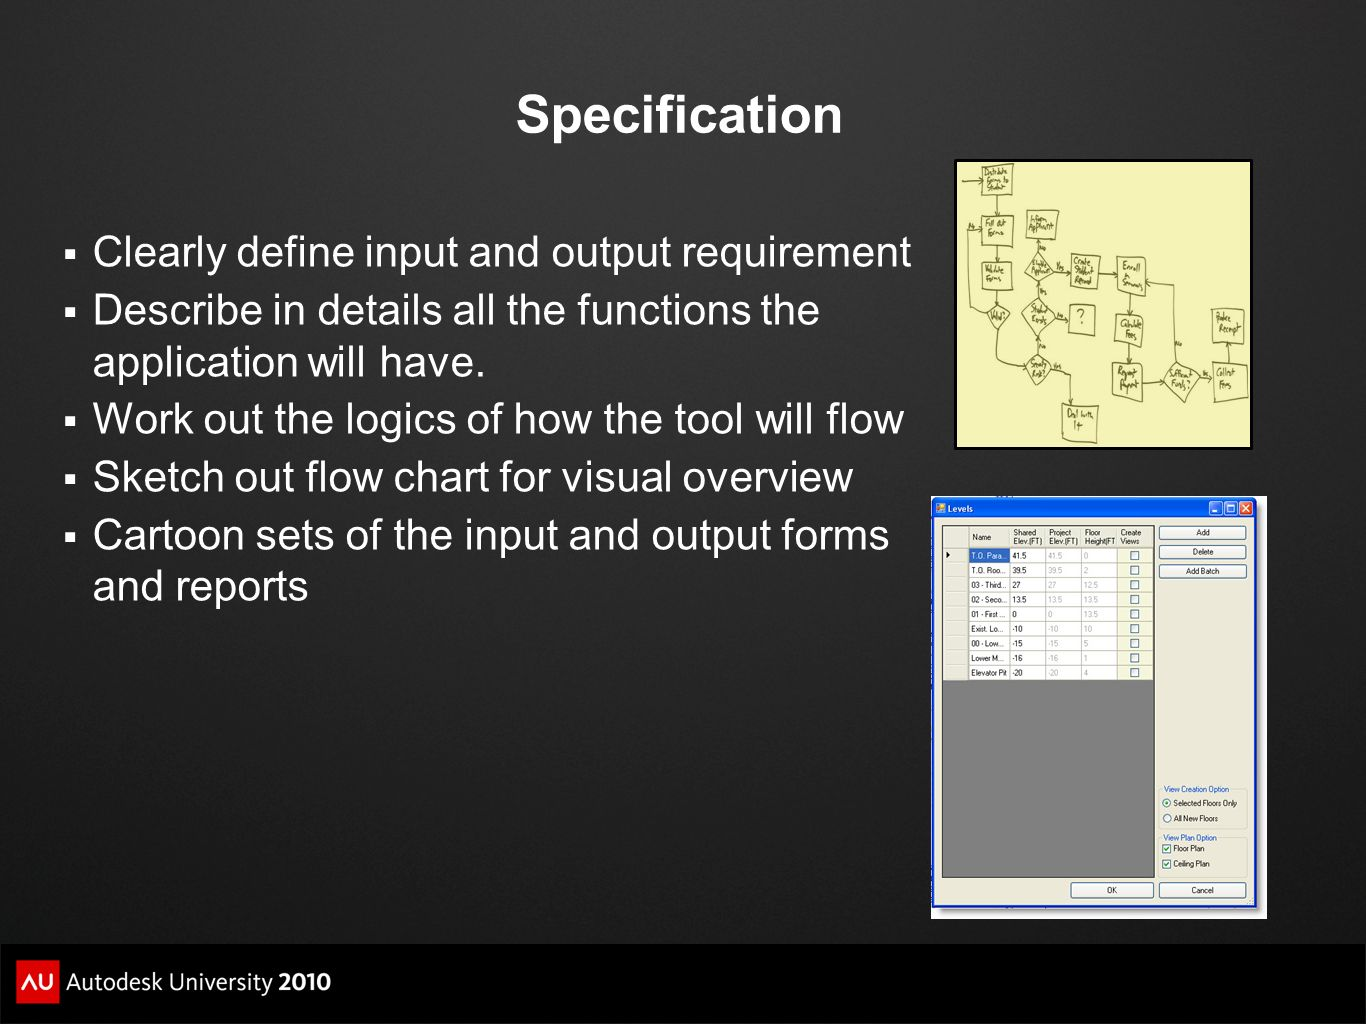 Specification Clearly define input and output requirement Describe in details all the functions the application will have. Work out the logics of how